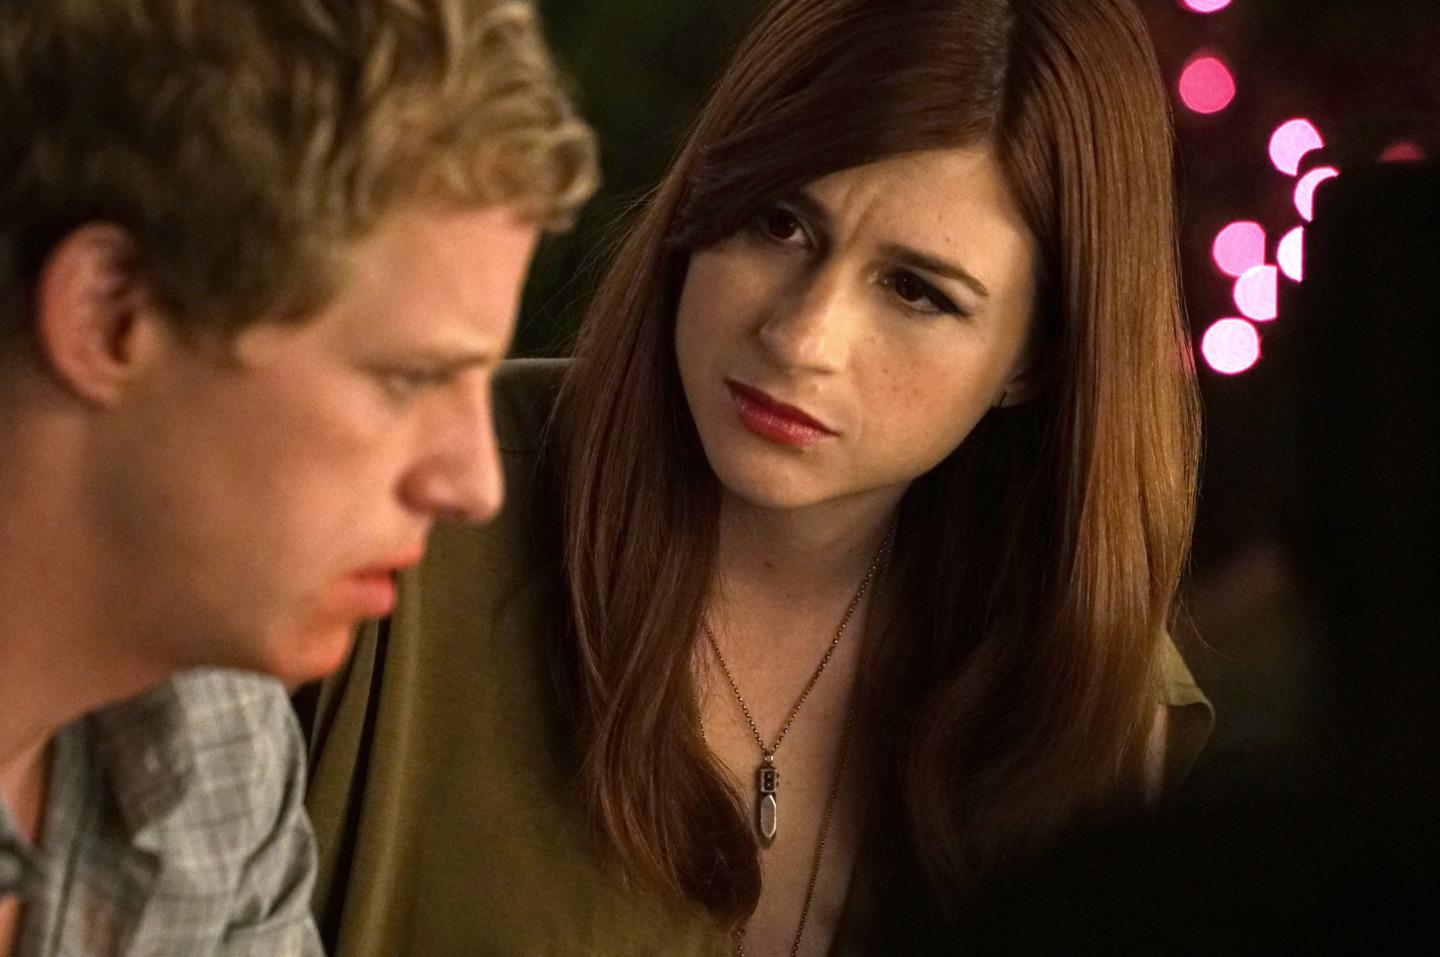 Chris Geere as Jimmy and Aya Cash as Gretchen in You're the Worst.